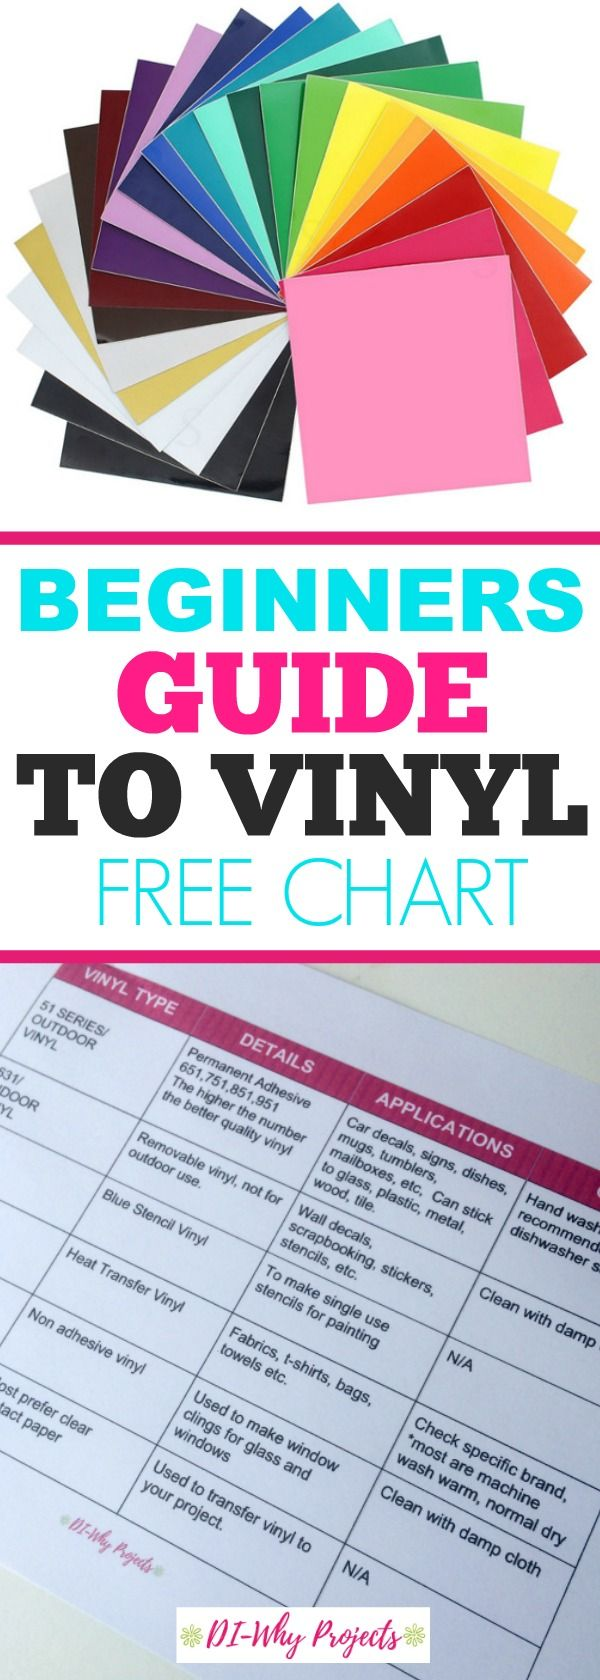 The beginners guide to vinyl for cricut or silhouette cutting machines.  Free printable guide to keep help you keep all of your vinyl projects straight.   #cricutprojects #silhouette #vinyl